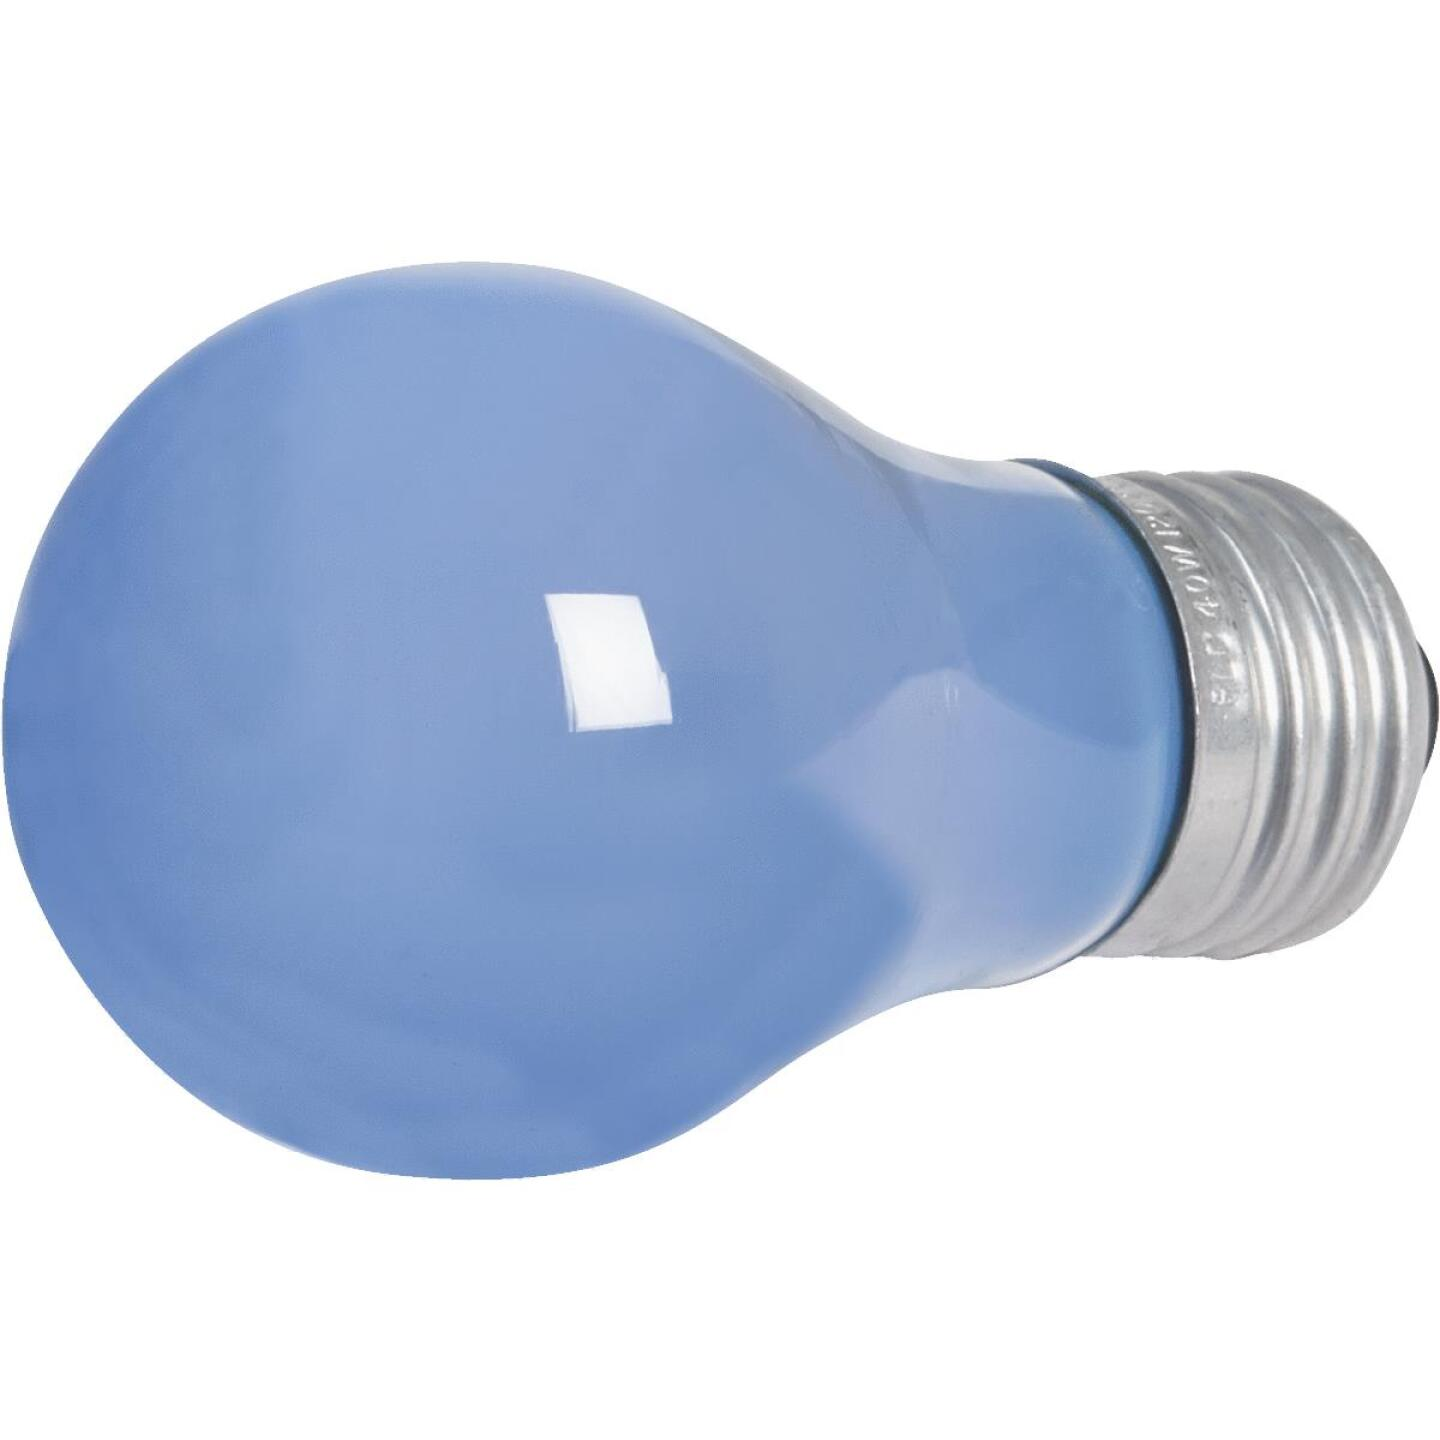 Philips Natural Light 40W Frosted Medium A15 Incandescent Ceiling Fan Light Bulb Image 1